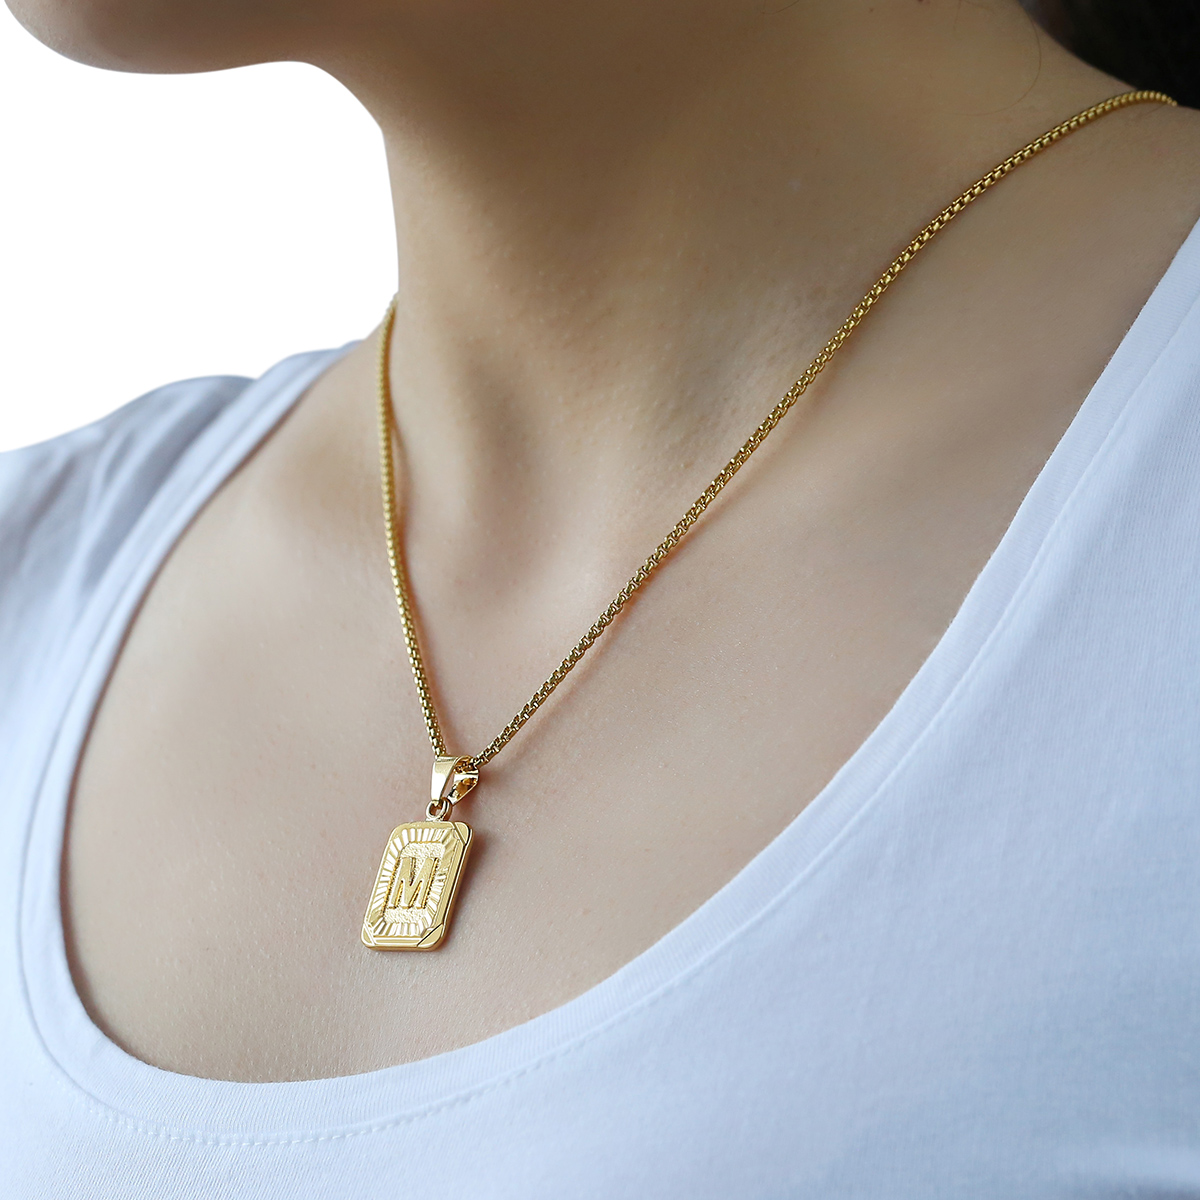 coin roberto rose gold pois necklace jewellery petit square image pendant moi